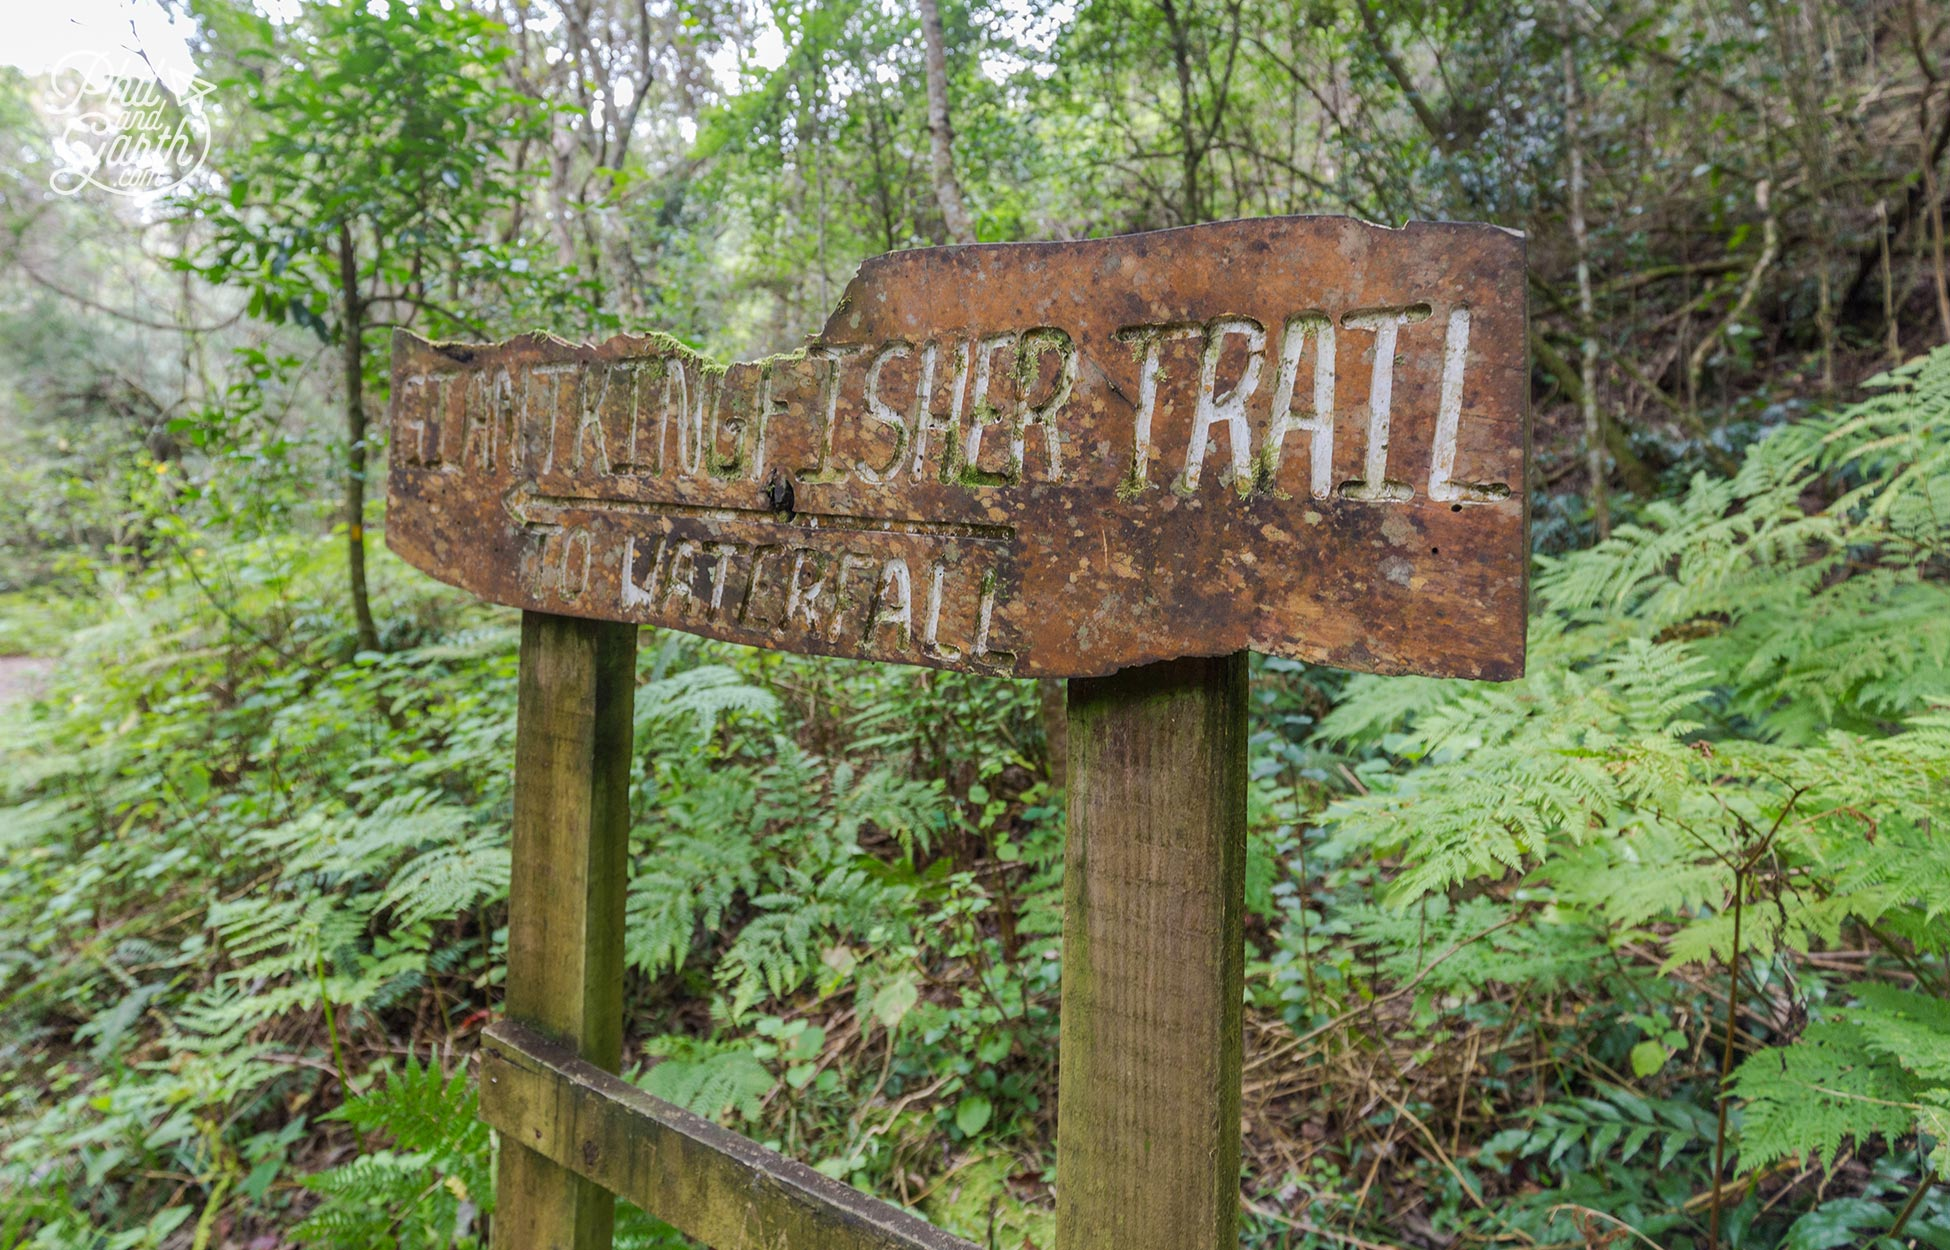 Giant Kingfisher Trail sign points us to the waterfall